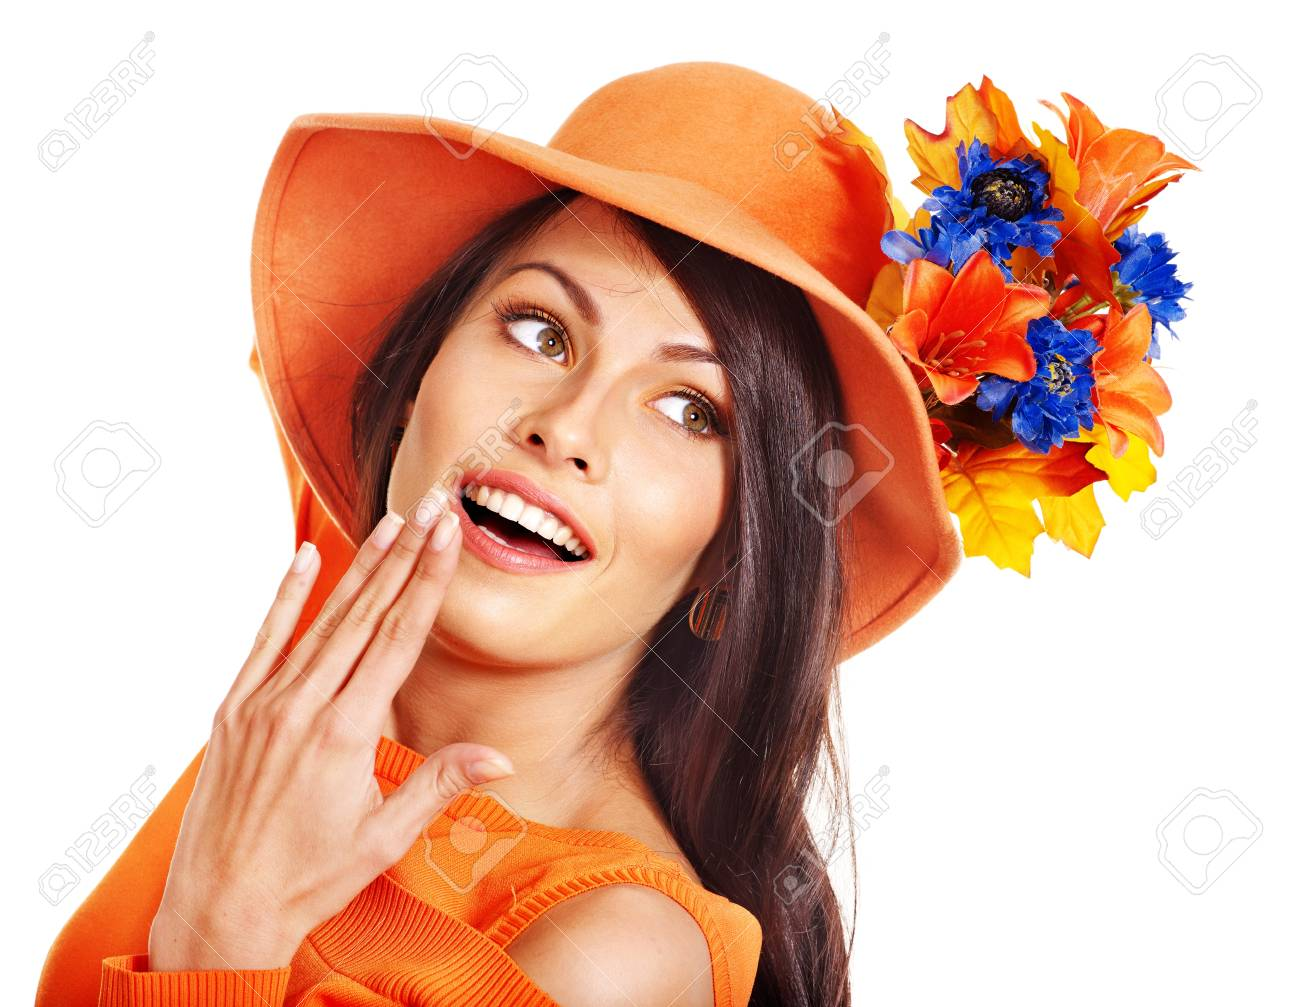 Woman wearing orange hat with flower. Isolated. Stock Photo - 15290469